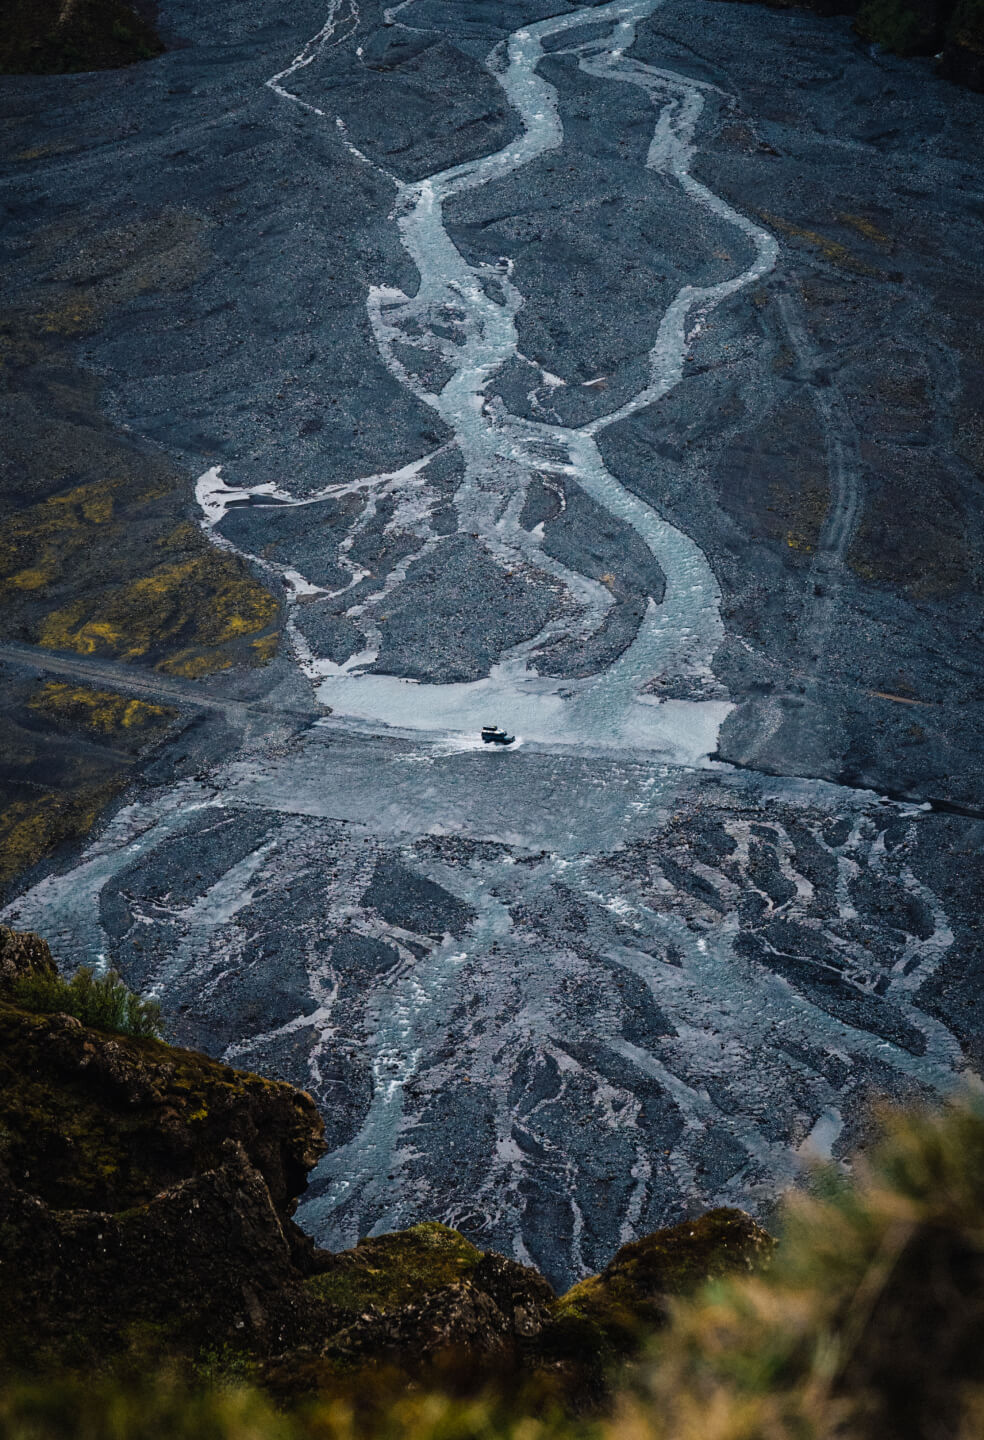 The glacial rivers of Iceland are simply out of this world.